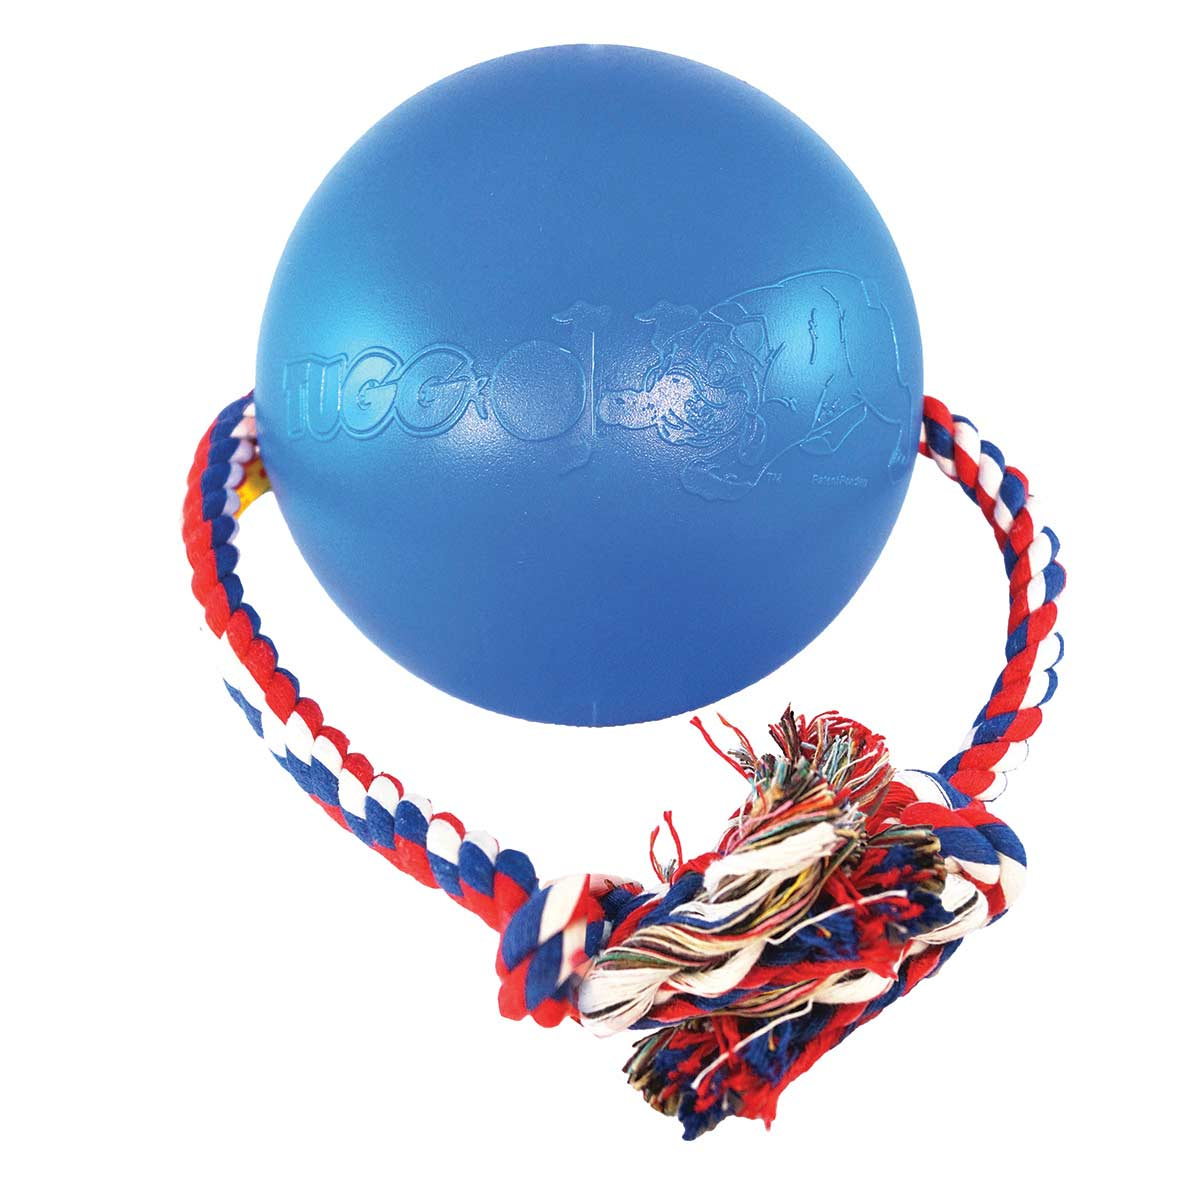 Medium Tuggo Blue Dog Tug Rope Toy at Ryan's Pet Supplies